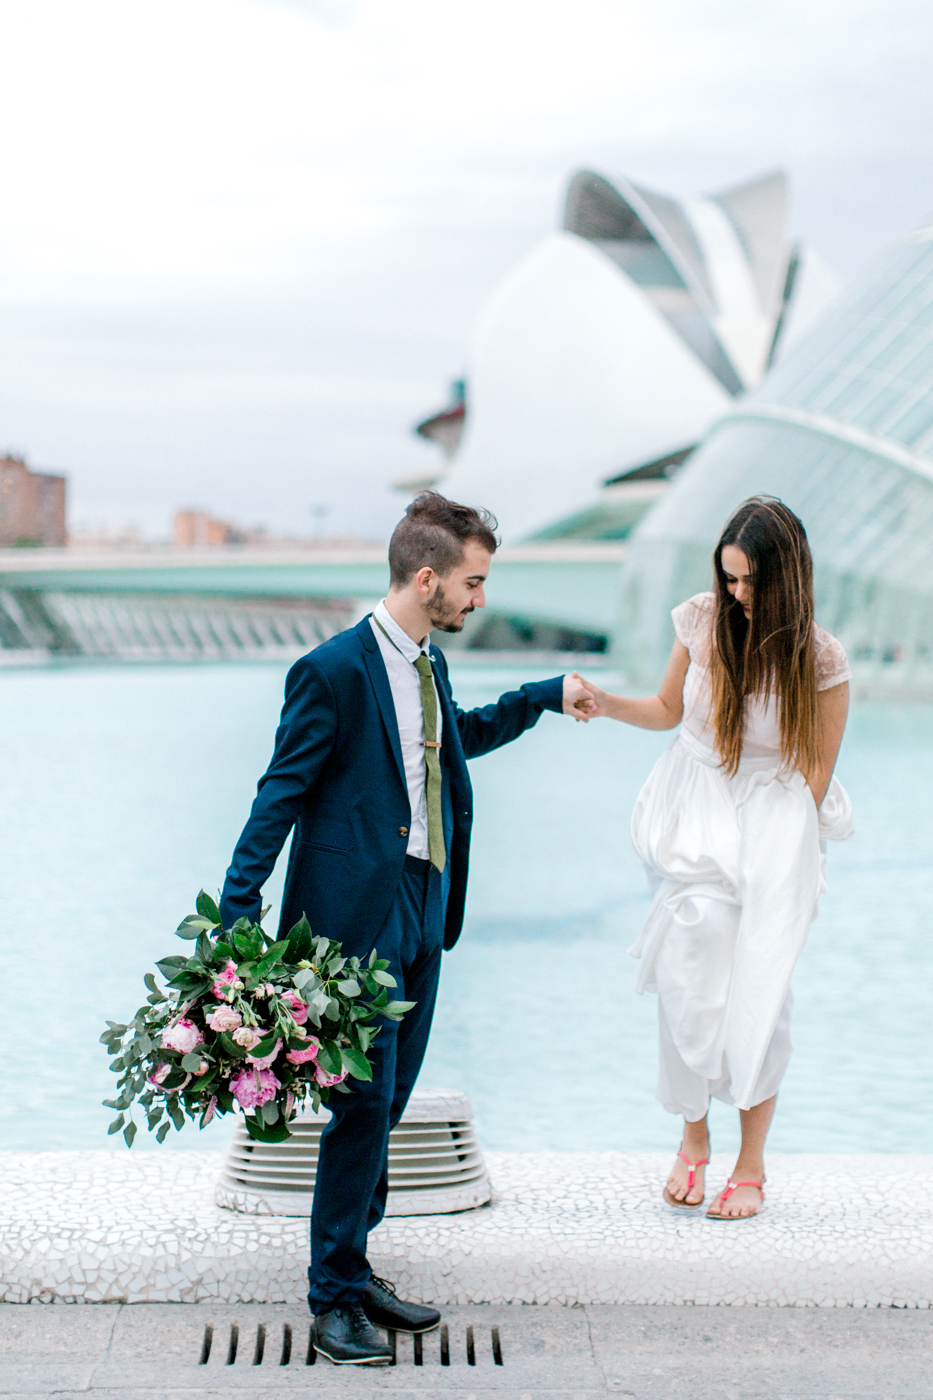 four corners photography valencia wedding photographer rad wedding photographer best spain wedding photographer wedding in spain  (16 of 39).jpg